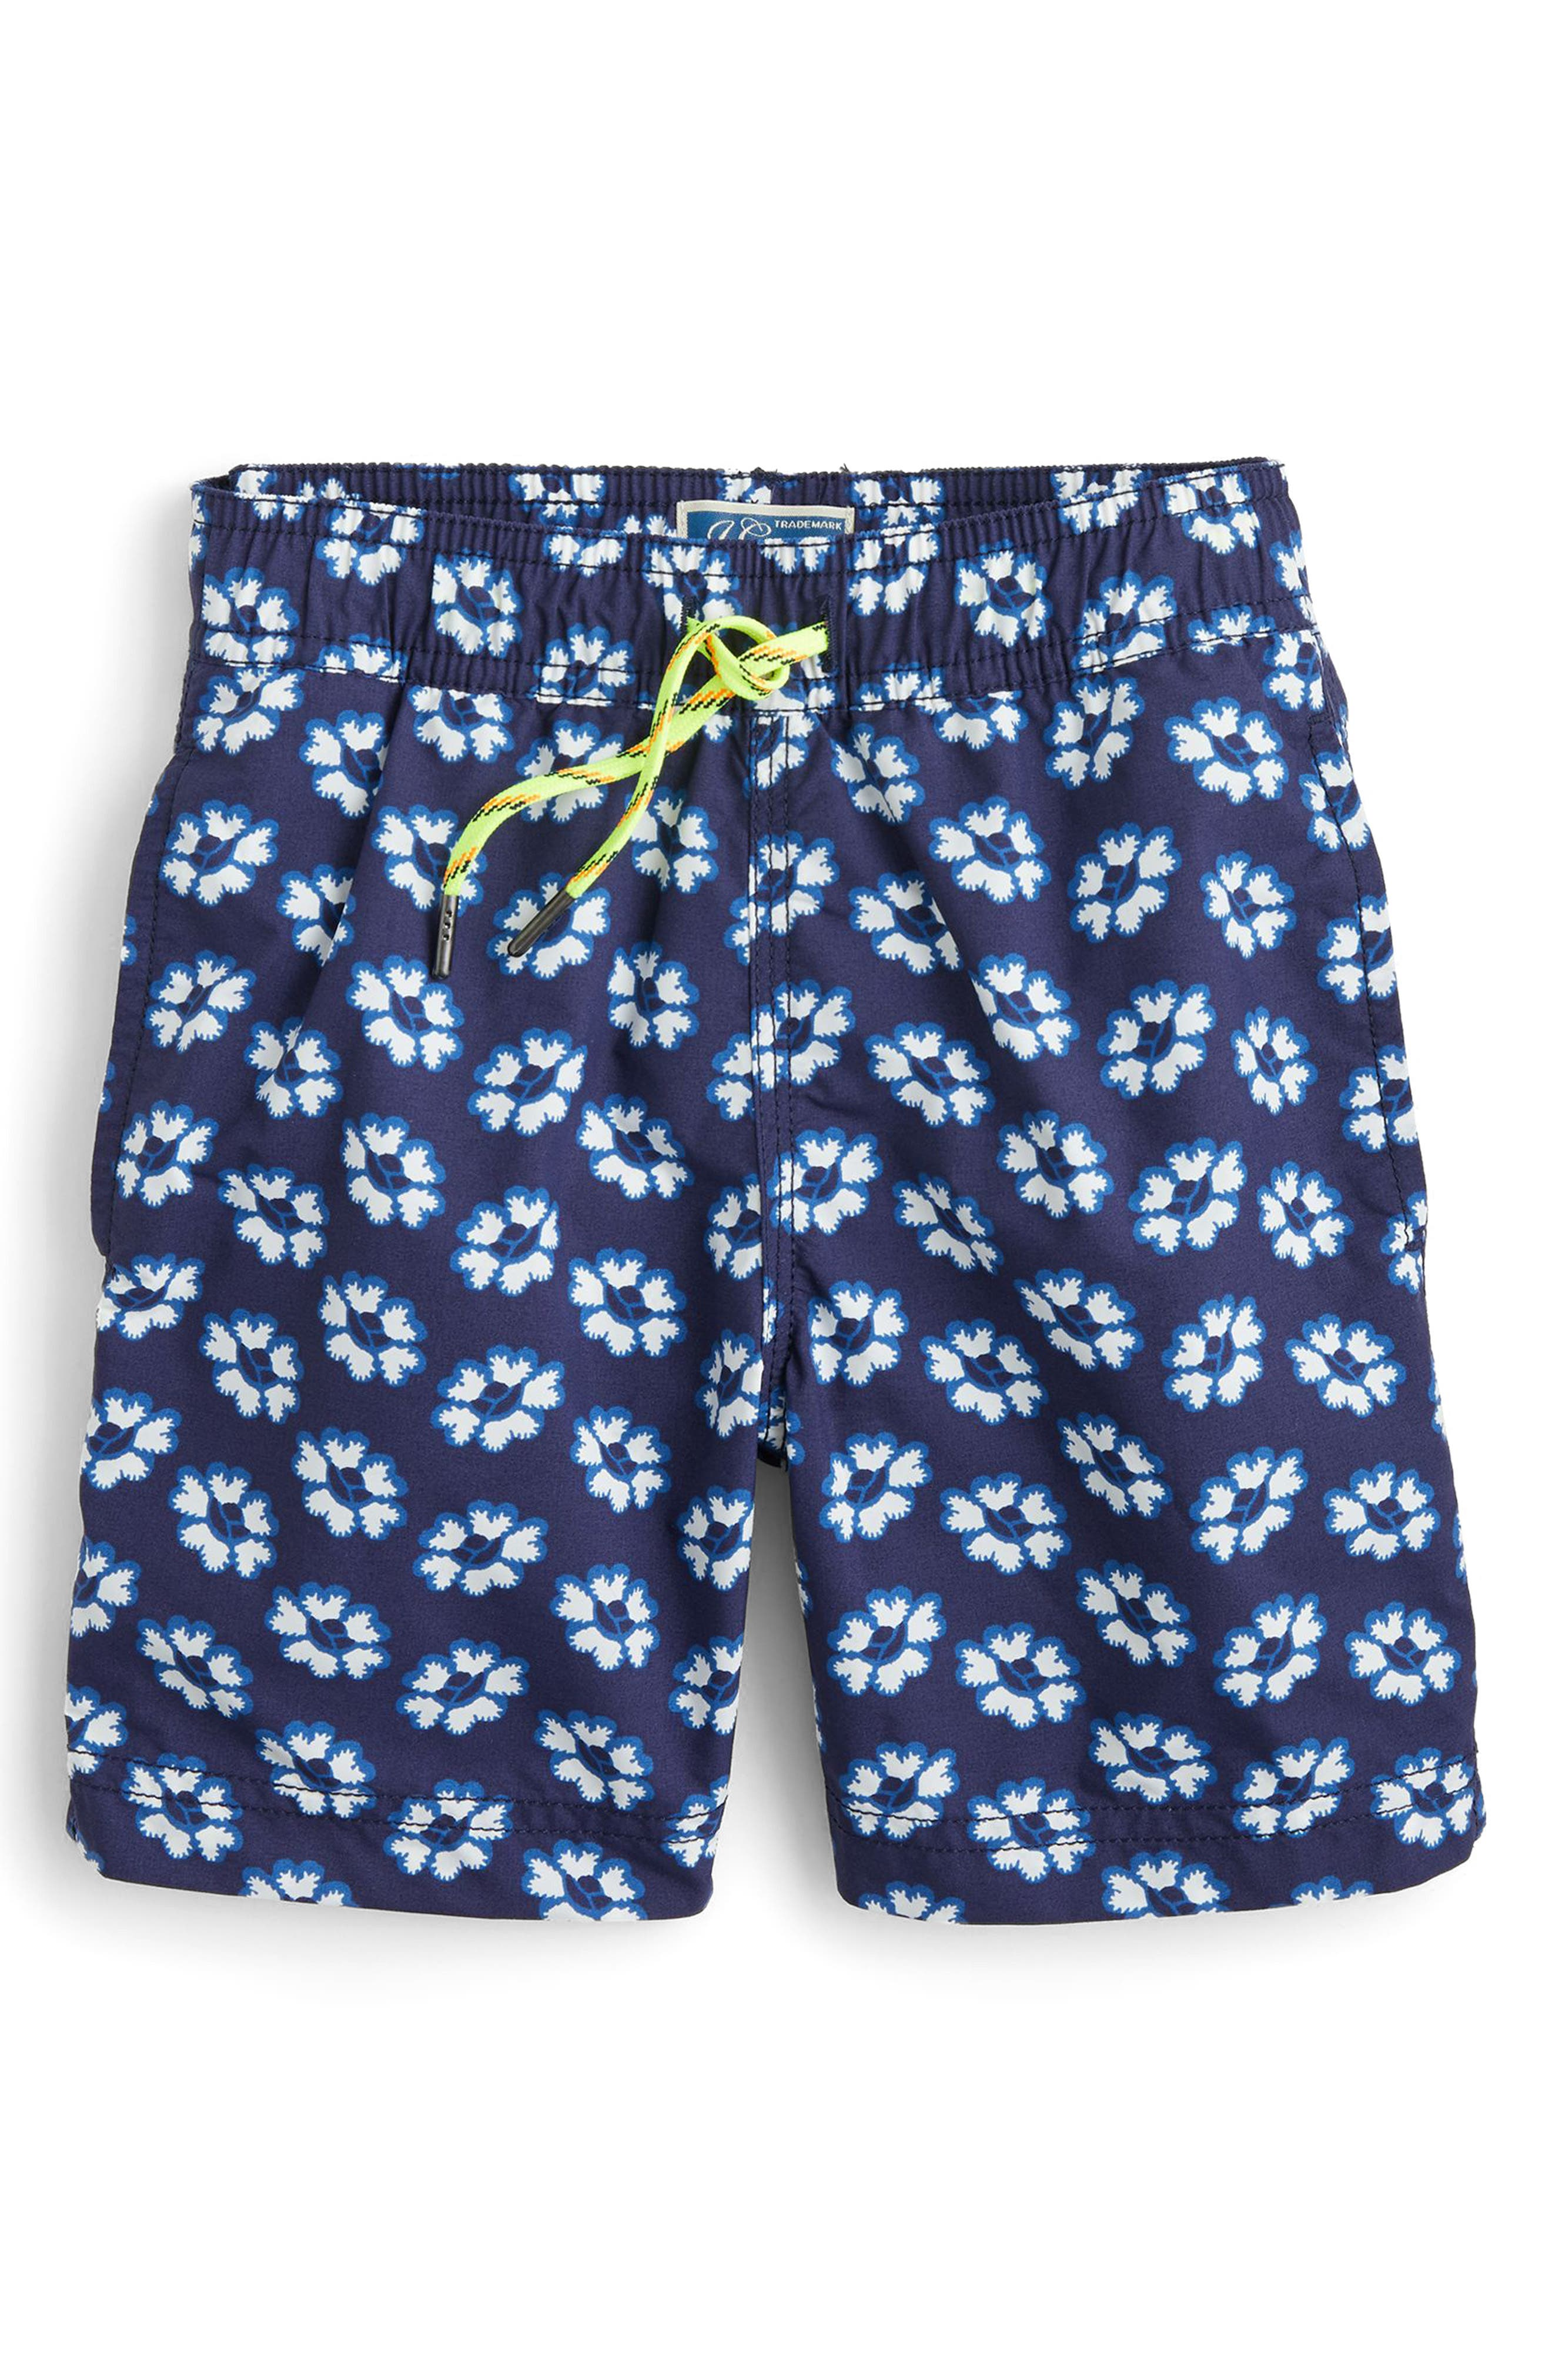 Blurry Flowers Swim Trunks,                         Main,                         color, 400